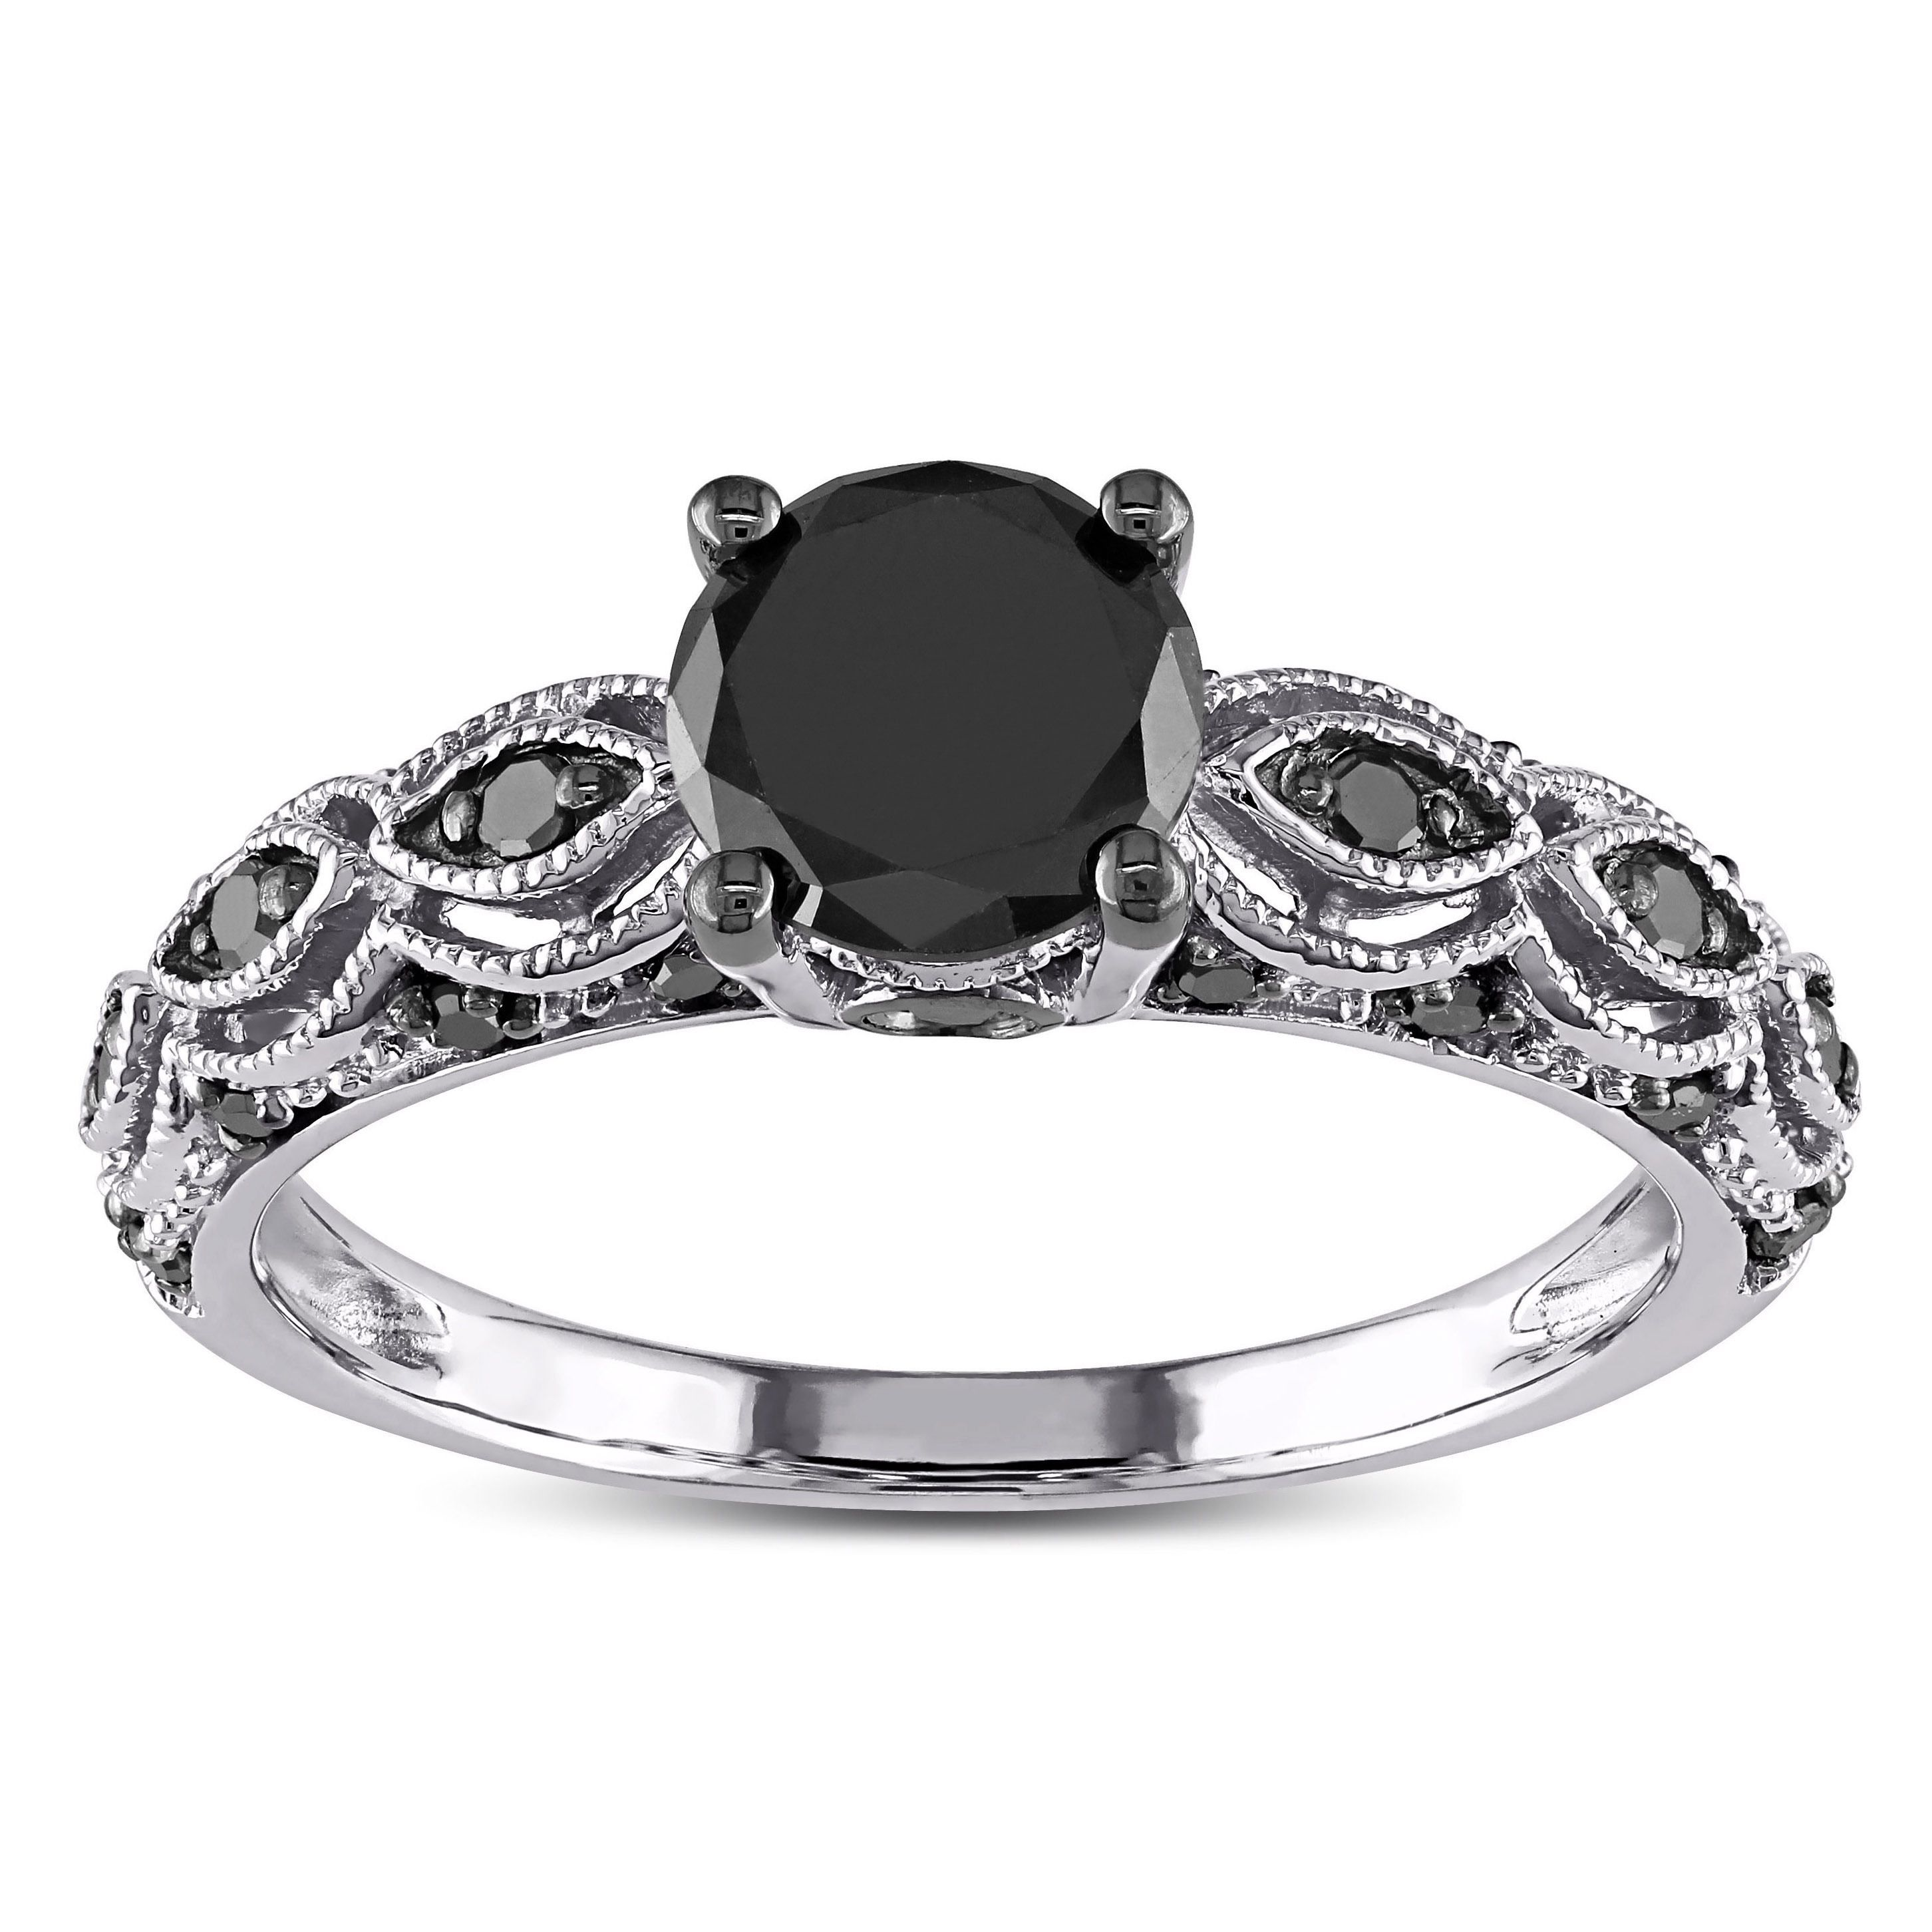 Miadora 10k White Gold 1 1 4 ct TDW Round Black Diamond Engagement